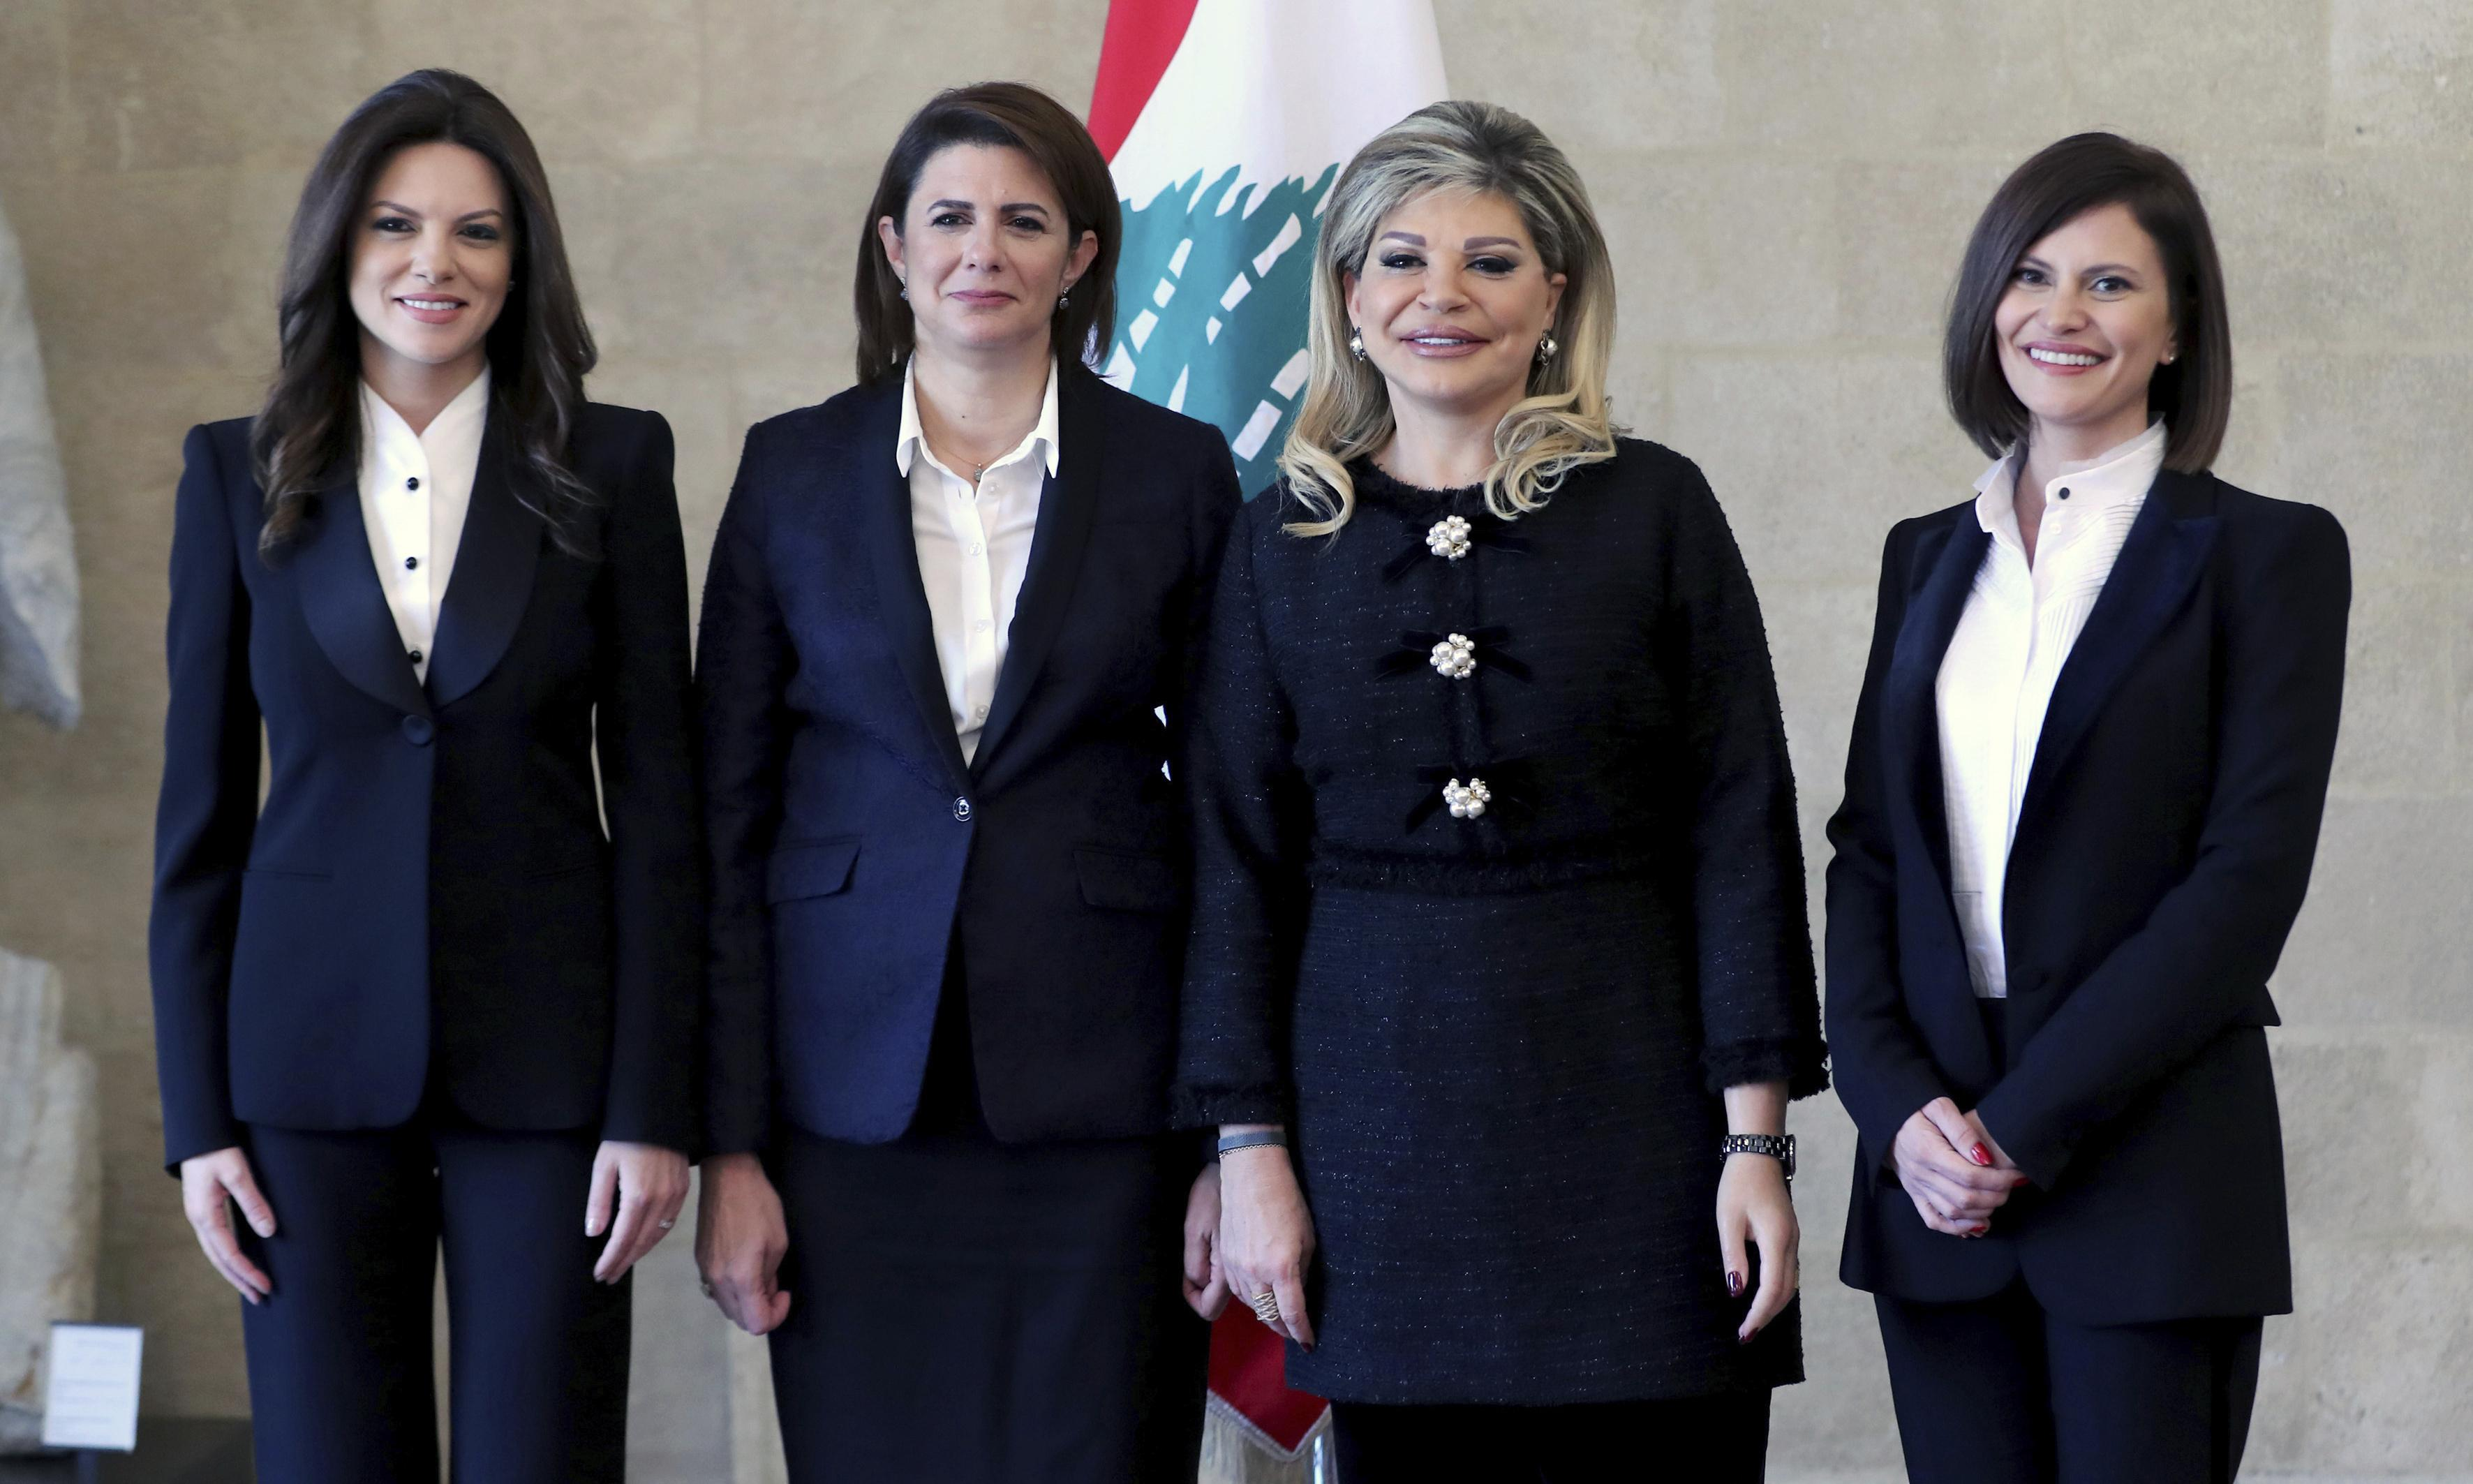 Arab world's first female interior minister hails 'point of pride for women'